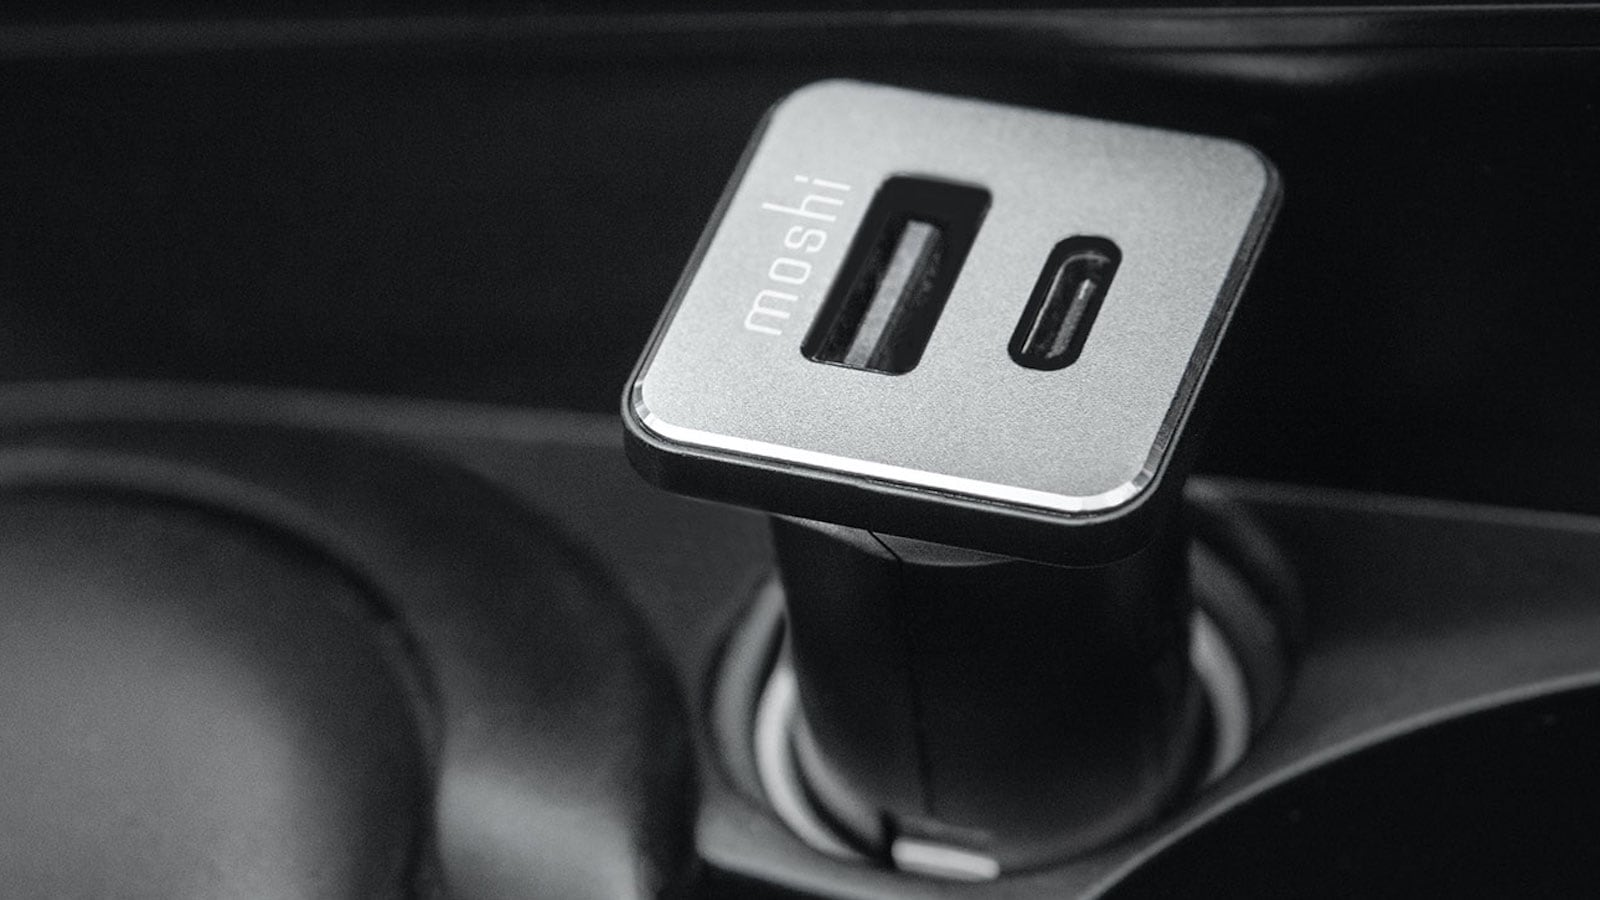 Moshi QuikDuo USB-C PD Car Charger can fast charge and deliver up to 36 watts